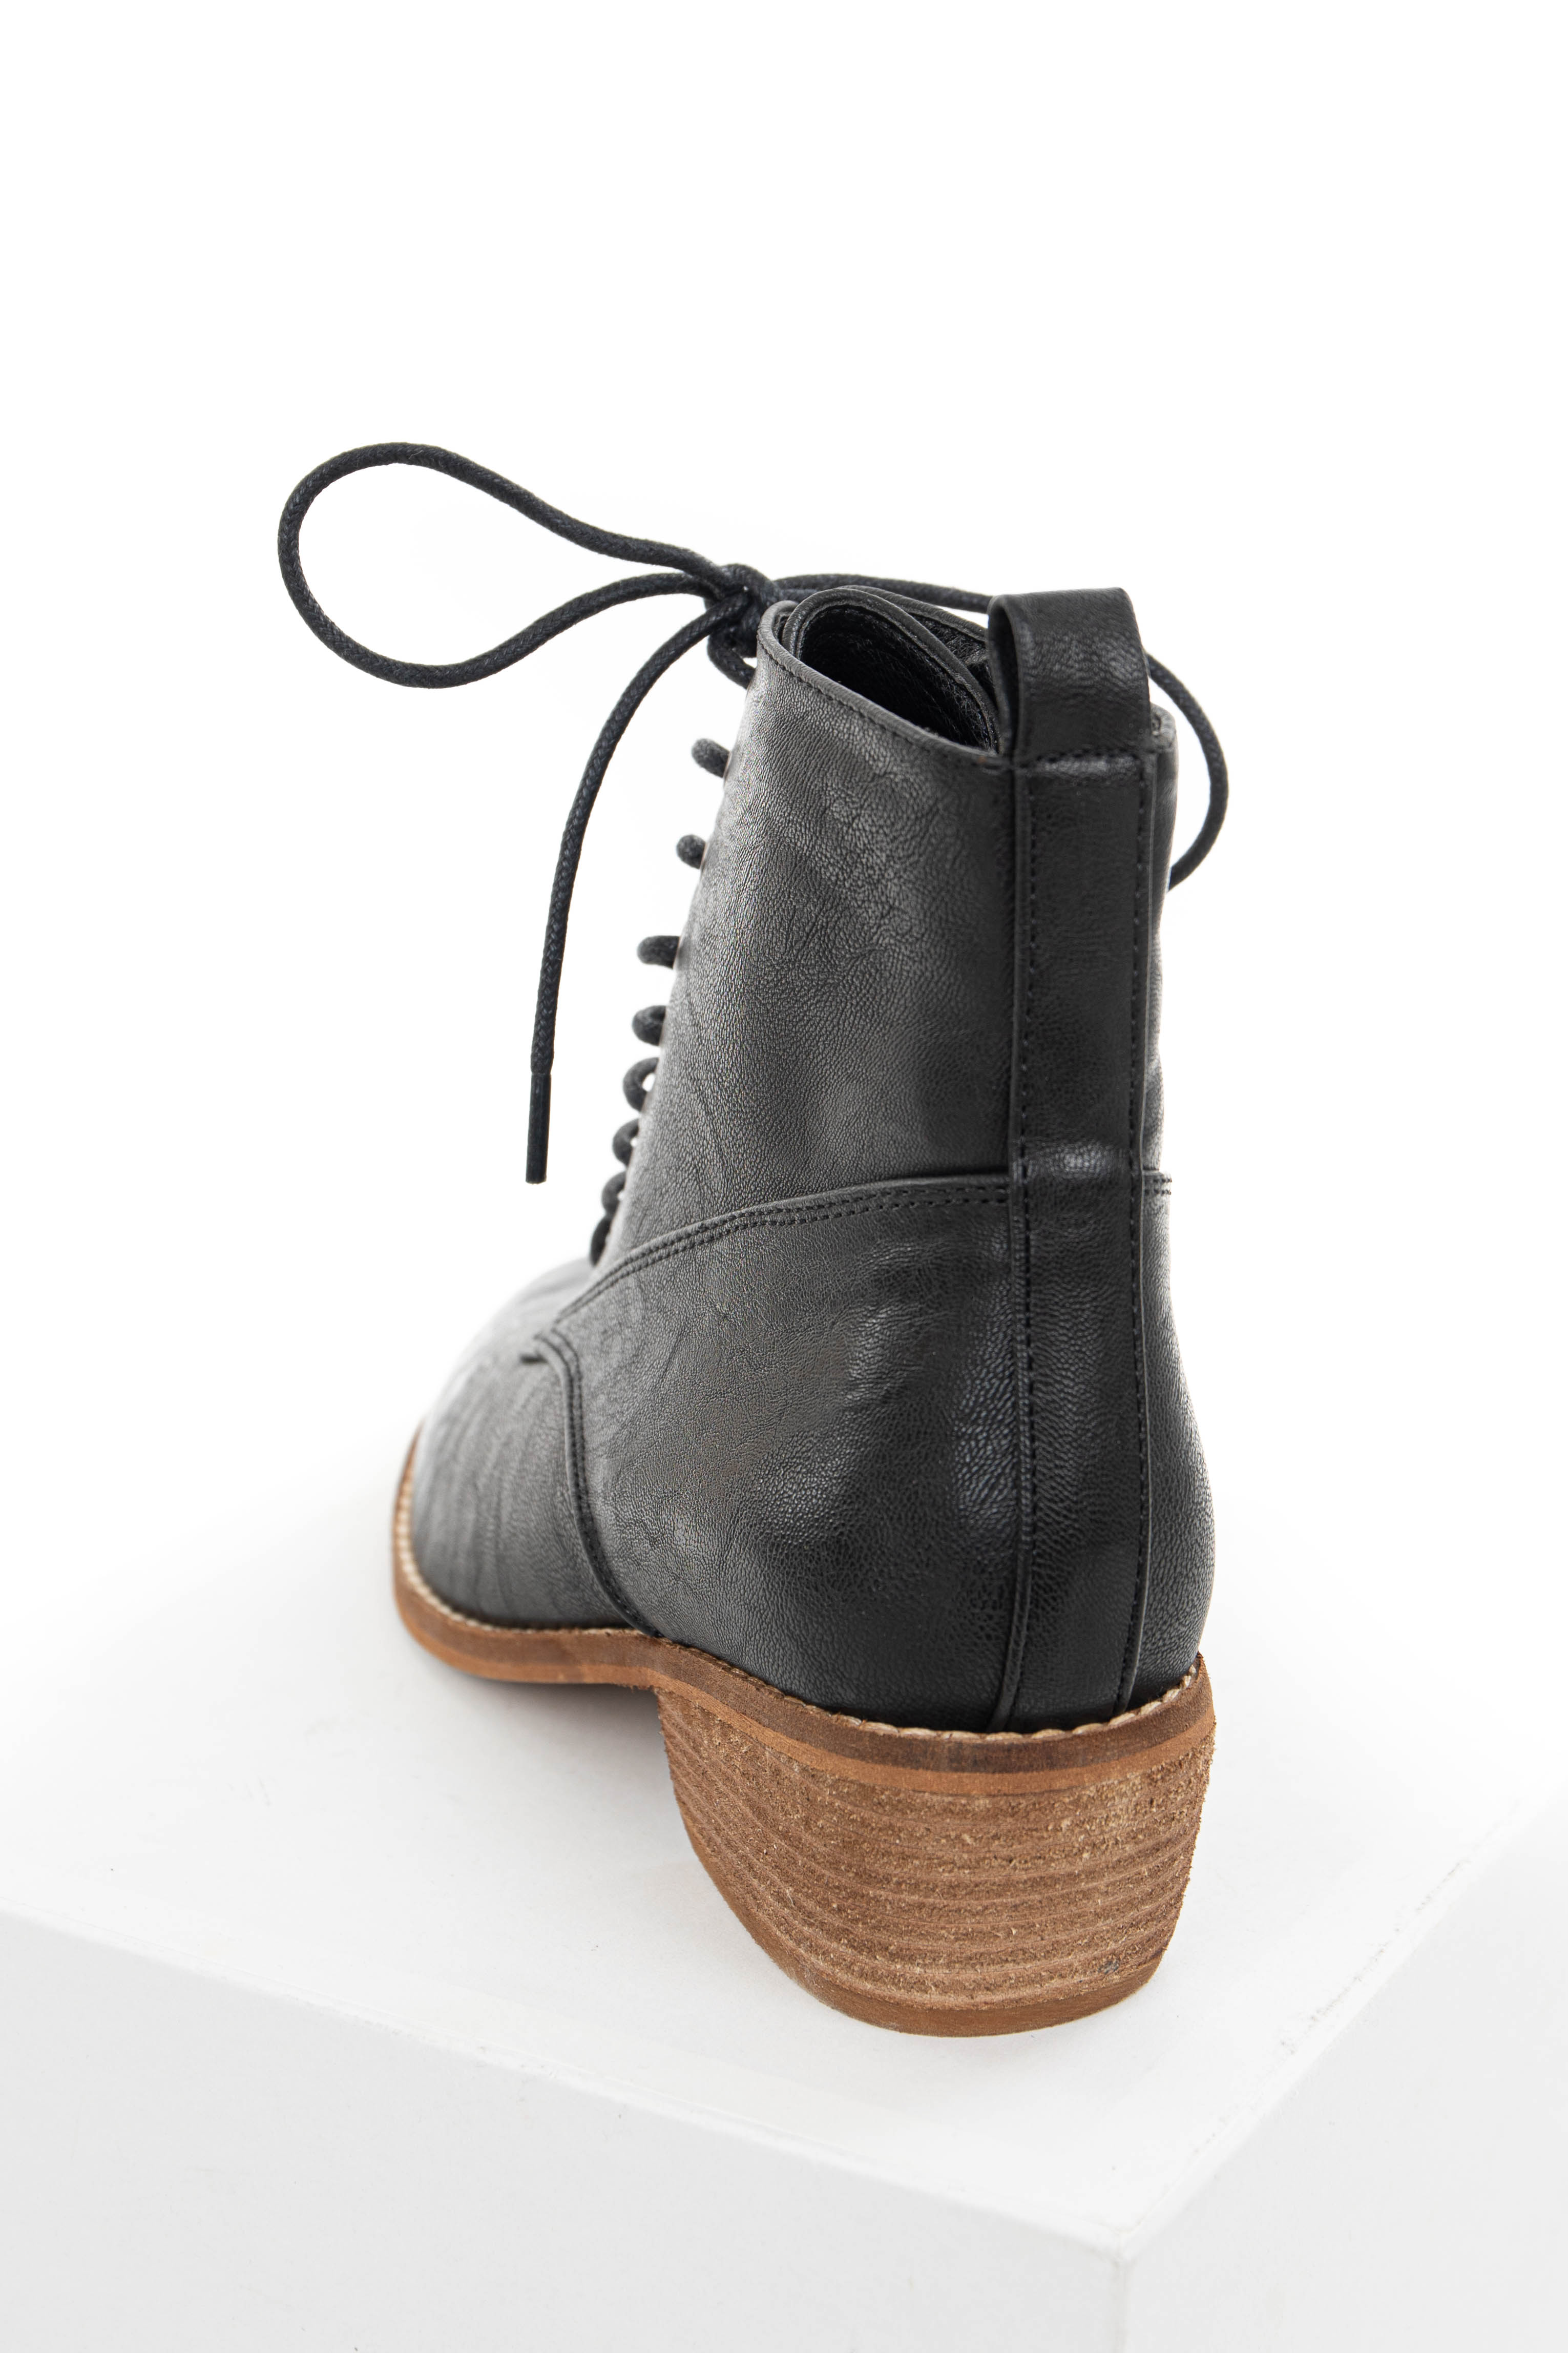 Black Faux Leather High Heeled Booties with Lace Up Front